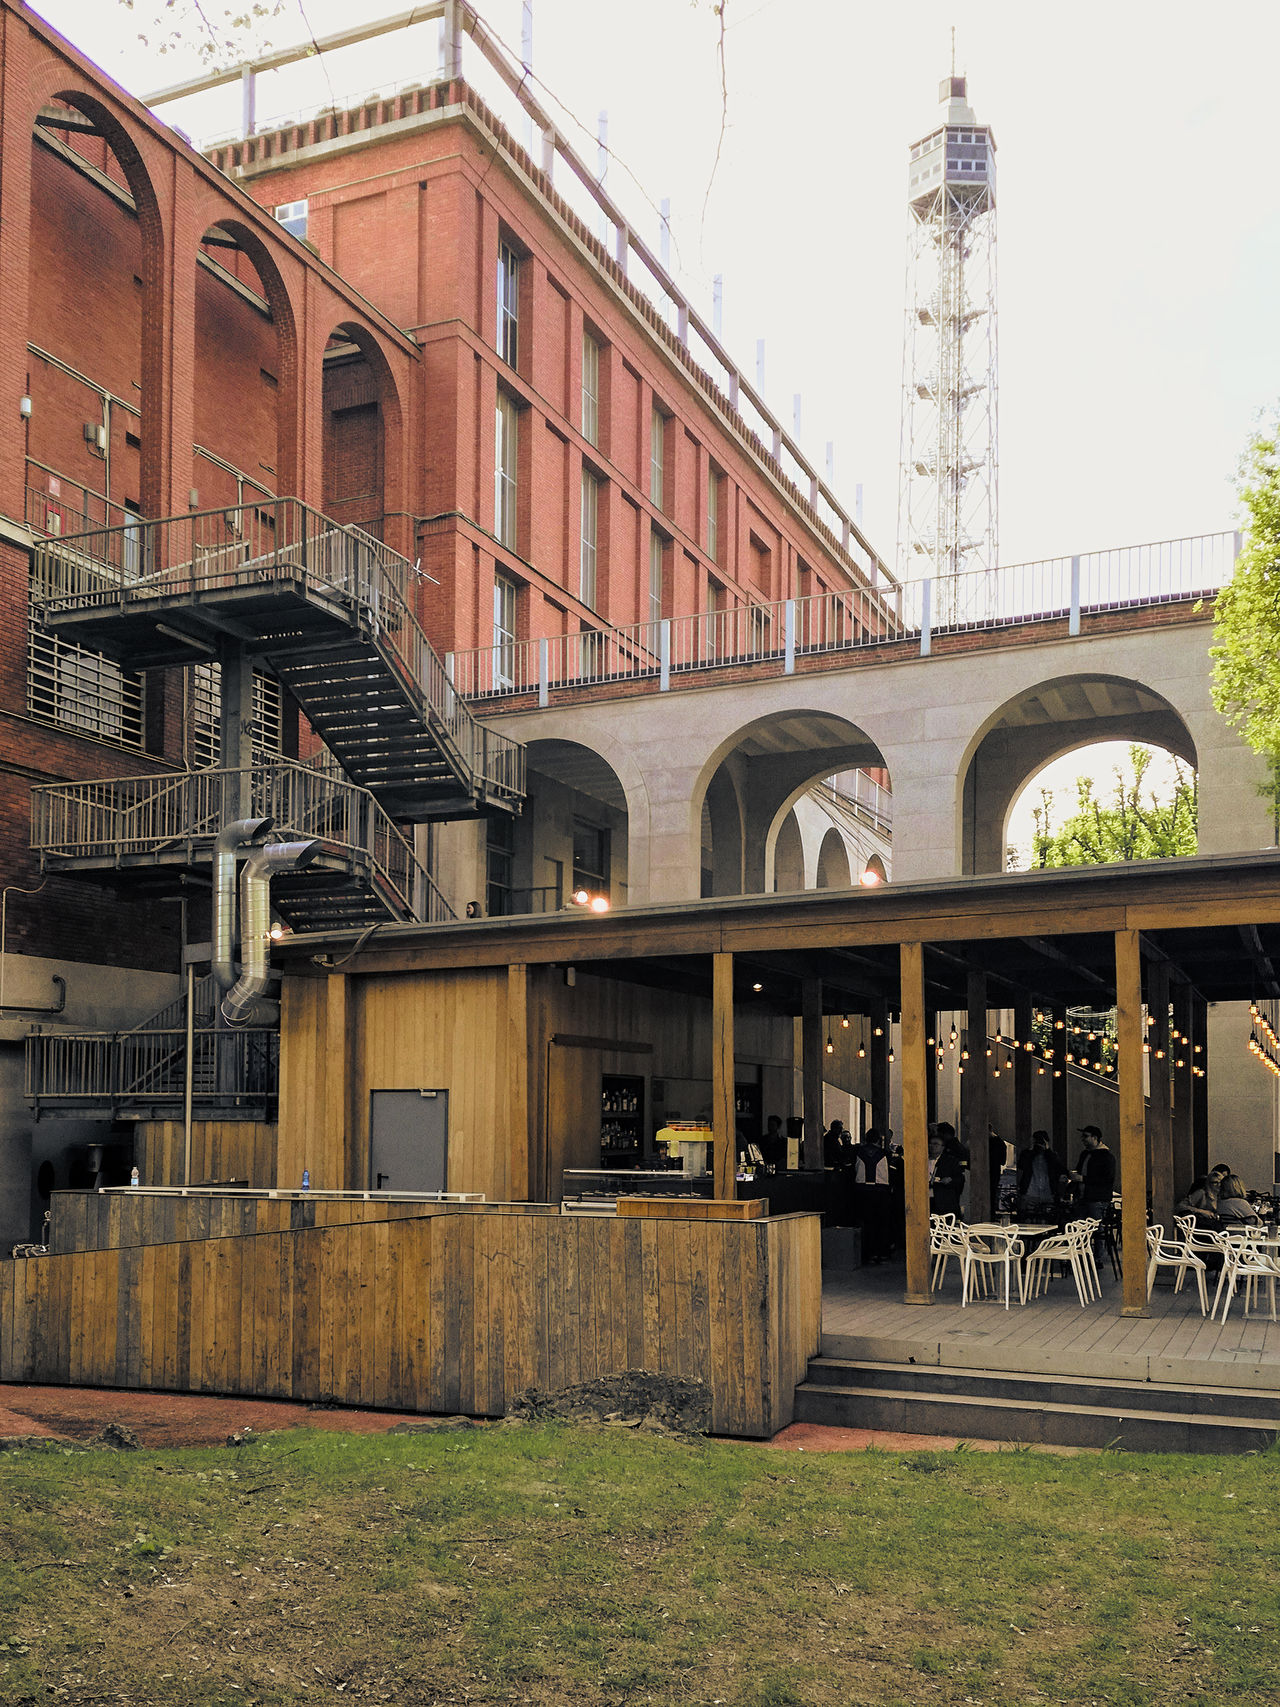 Architecture Building Exterior Built Structure Day Milano Design Week 2017 - Ventura Lambrate #salonedelmobile #milanodesignweek #design #milano #milan #venturalambrate #venturadesigndistrict #venturadesign #venturadesignco Ilsalone Ilsalonedelmobile No People Outdoors Sky Triennale